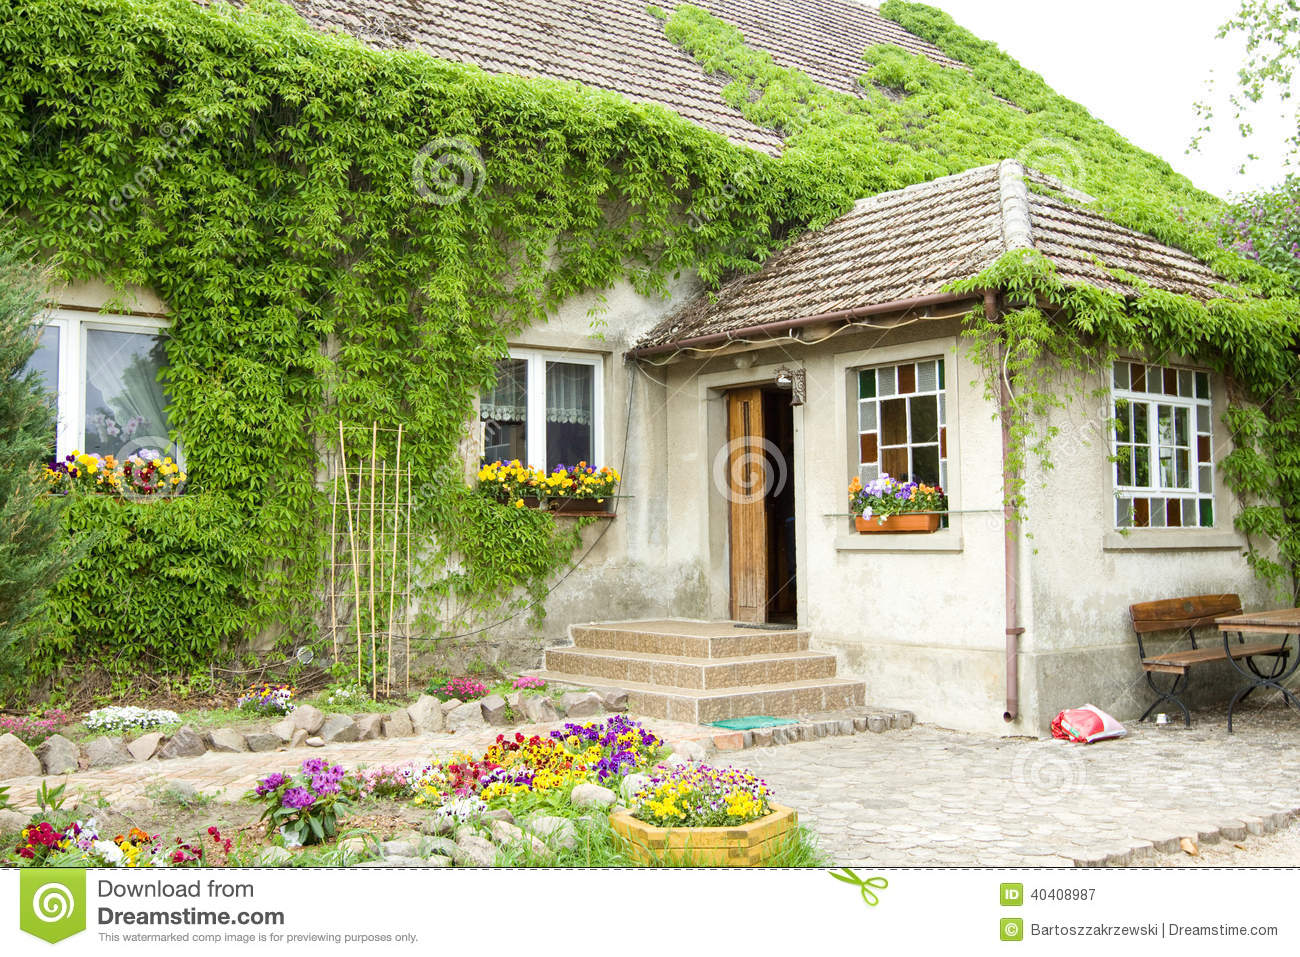 D5ace259f9b4cede Country Home Plans With Front Porch Simple Country House Plans likewise Stock Photography Wooden House Winter Wood Image9493542 besides Royalty Free Stock Images Cottage Window Shutters Decorated Hearts Sweden Wooden Linkoping Image33993669 in addition Royalty Free Stock Photography House Overgrown Vines Flowers Front Image40408987 likewise Rabbit House. on rustic cottage plans